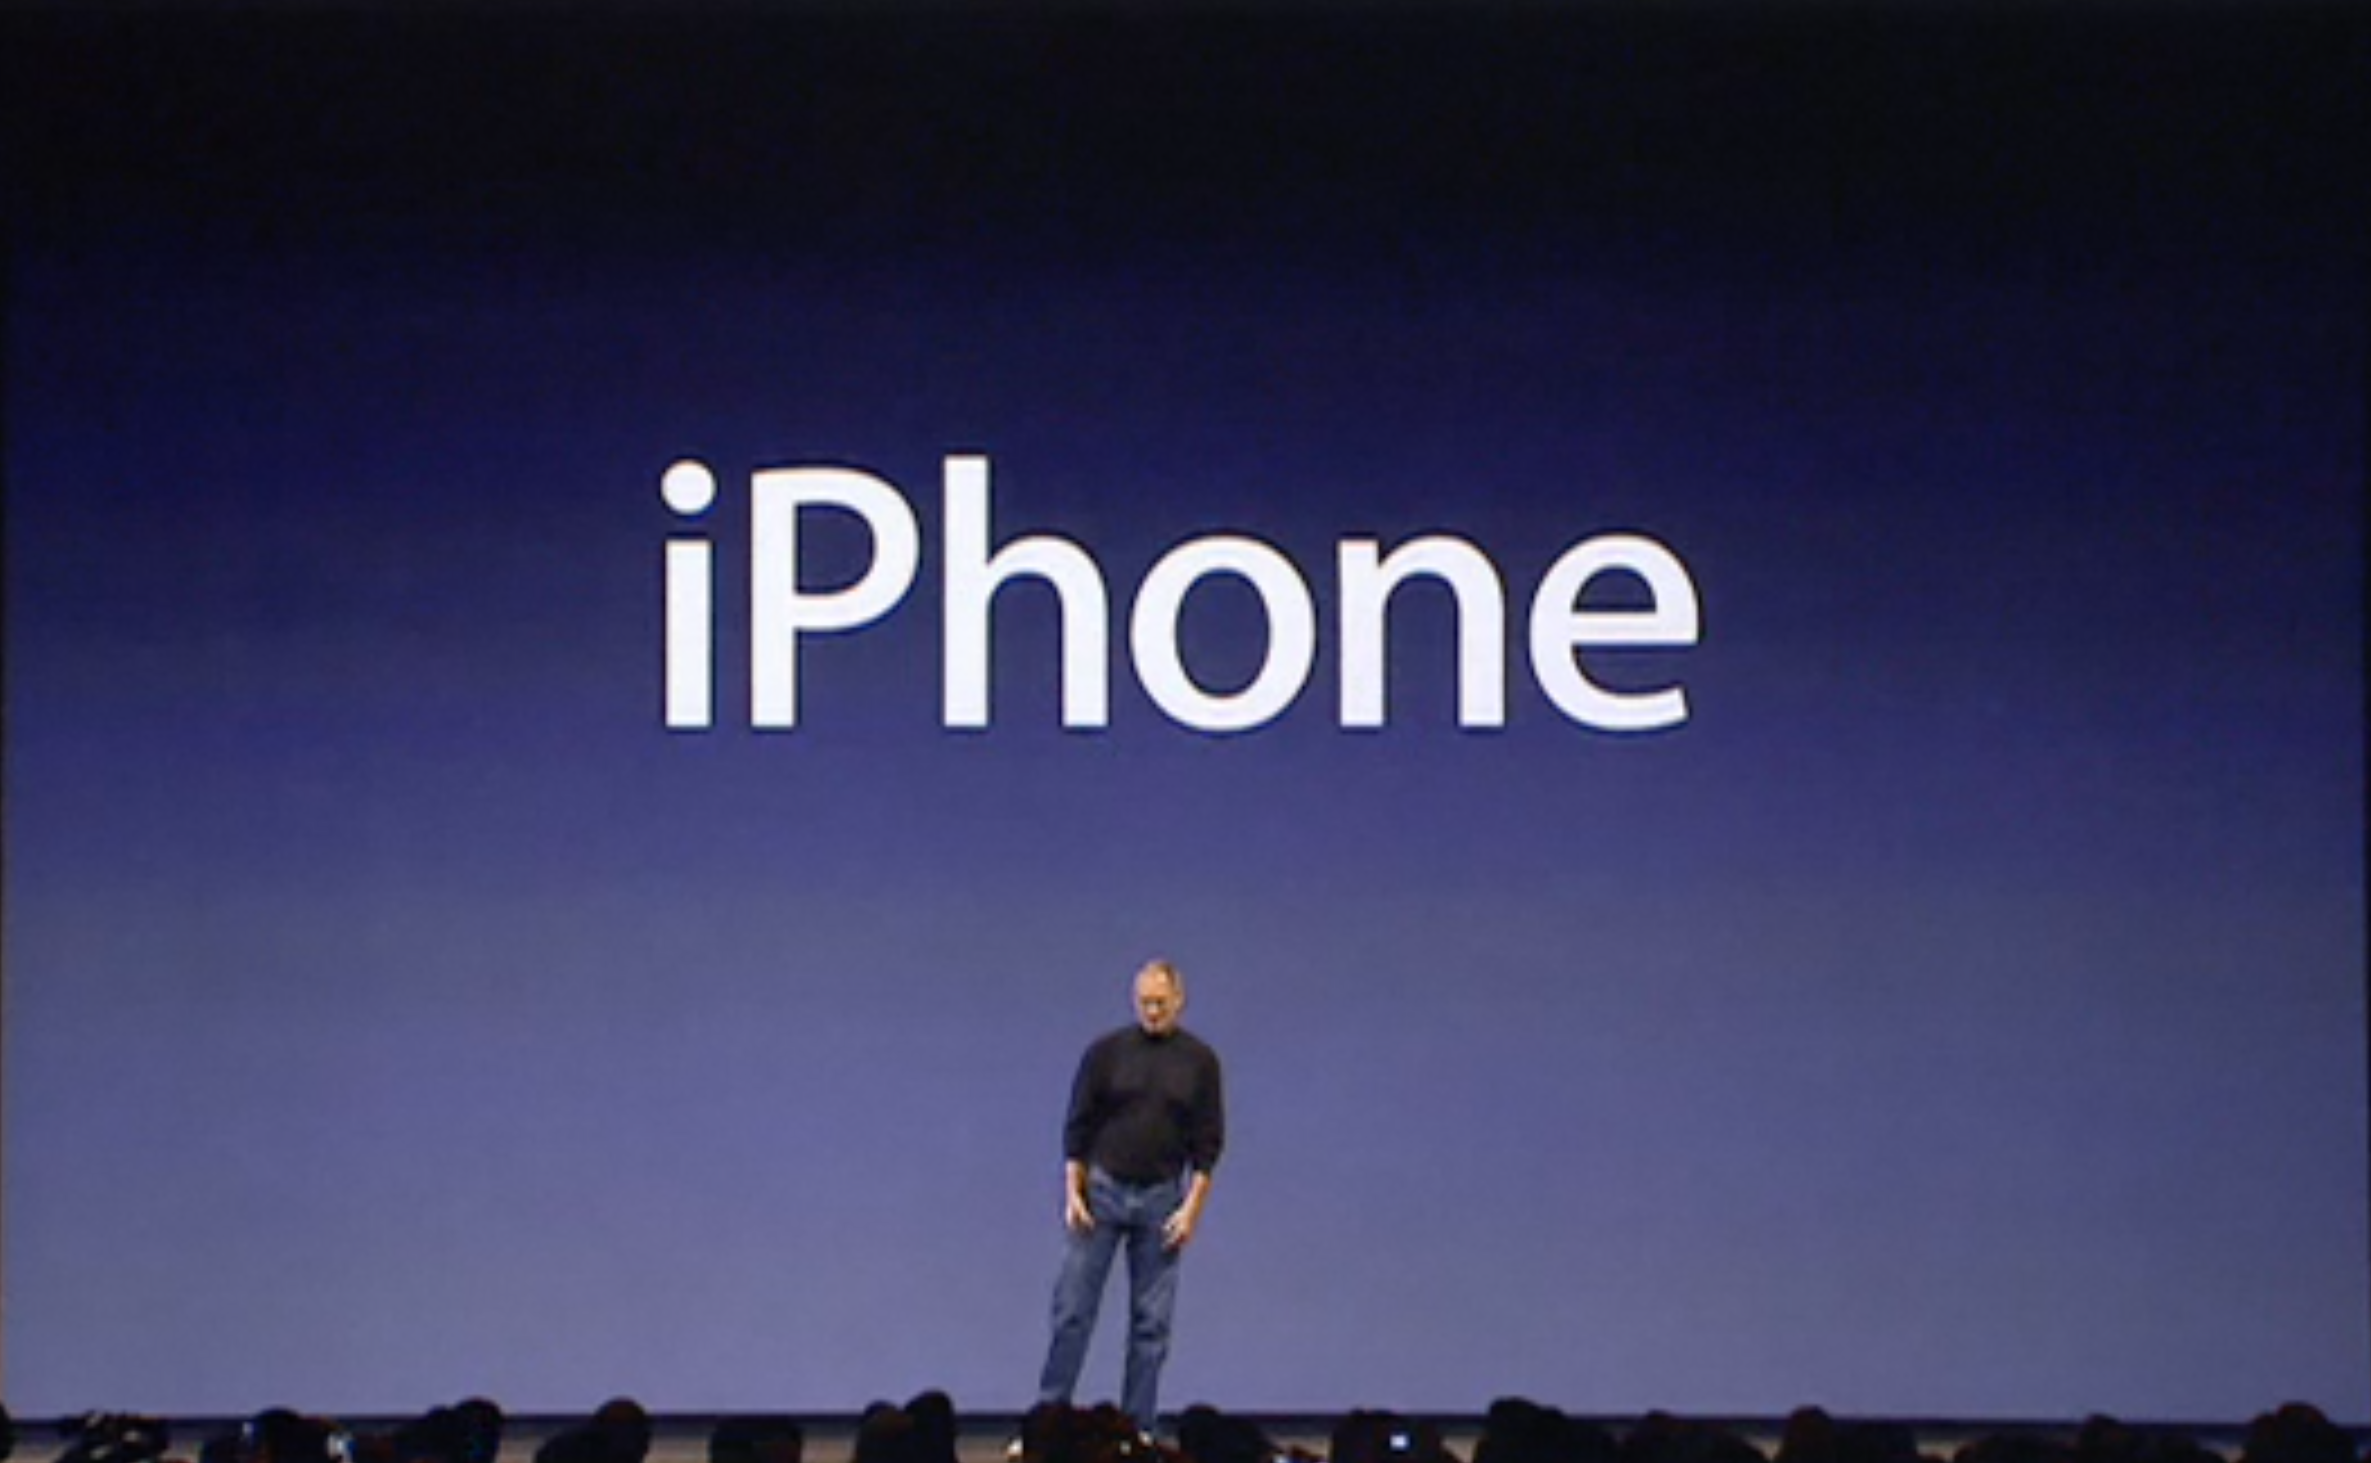 iPhone announcement presenation